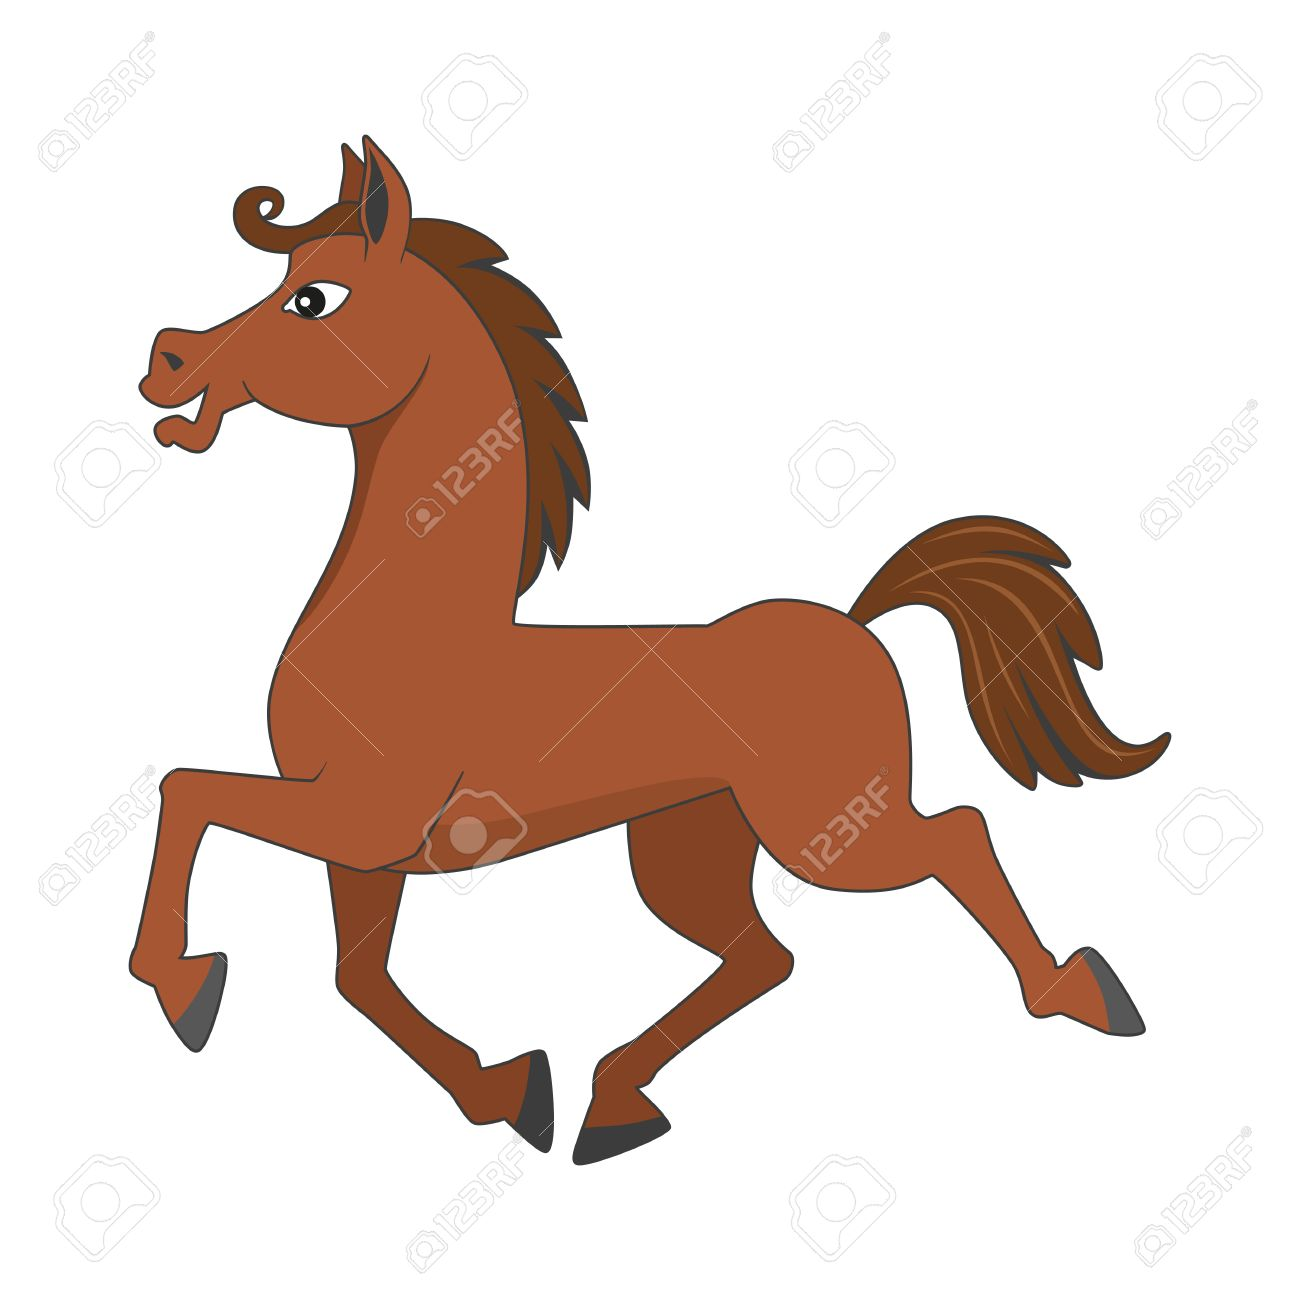 Running Cartoon Horse Royalty Free Cliparts Vectors And Stock Illustration Image 25246307